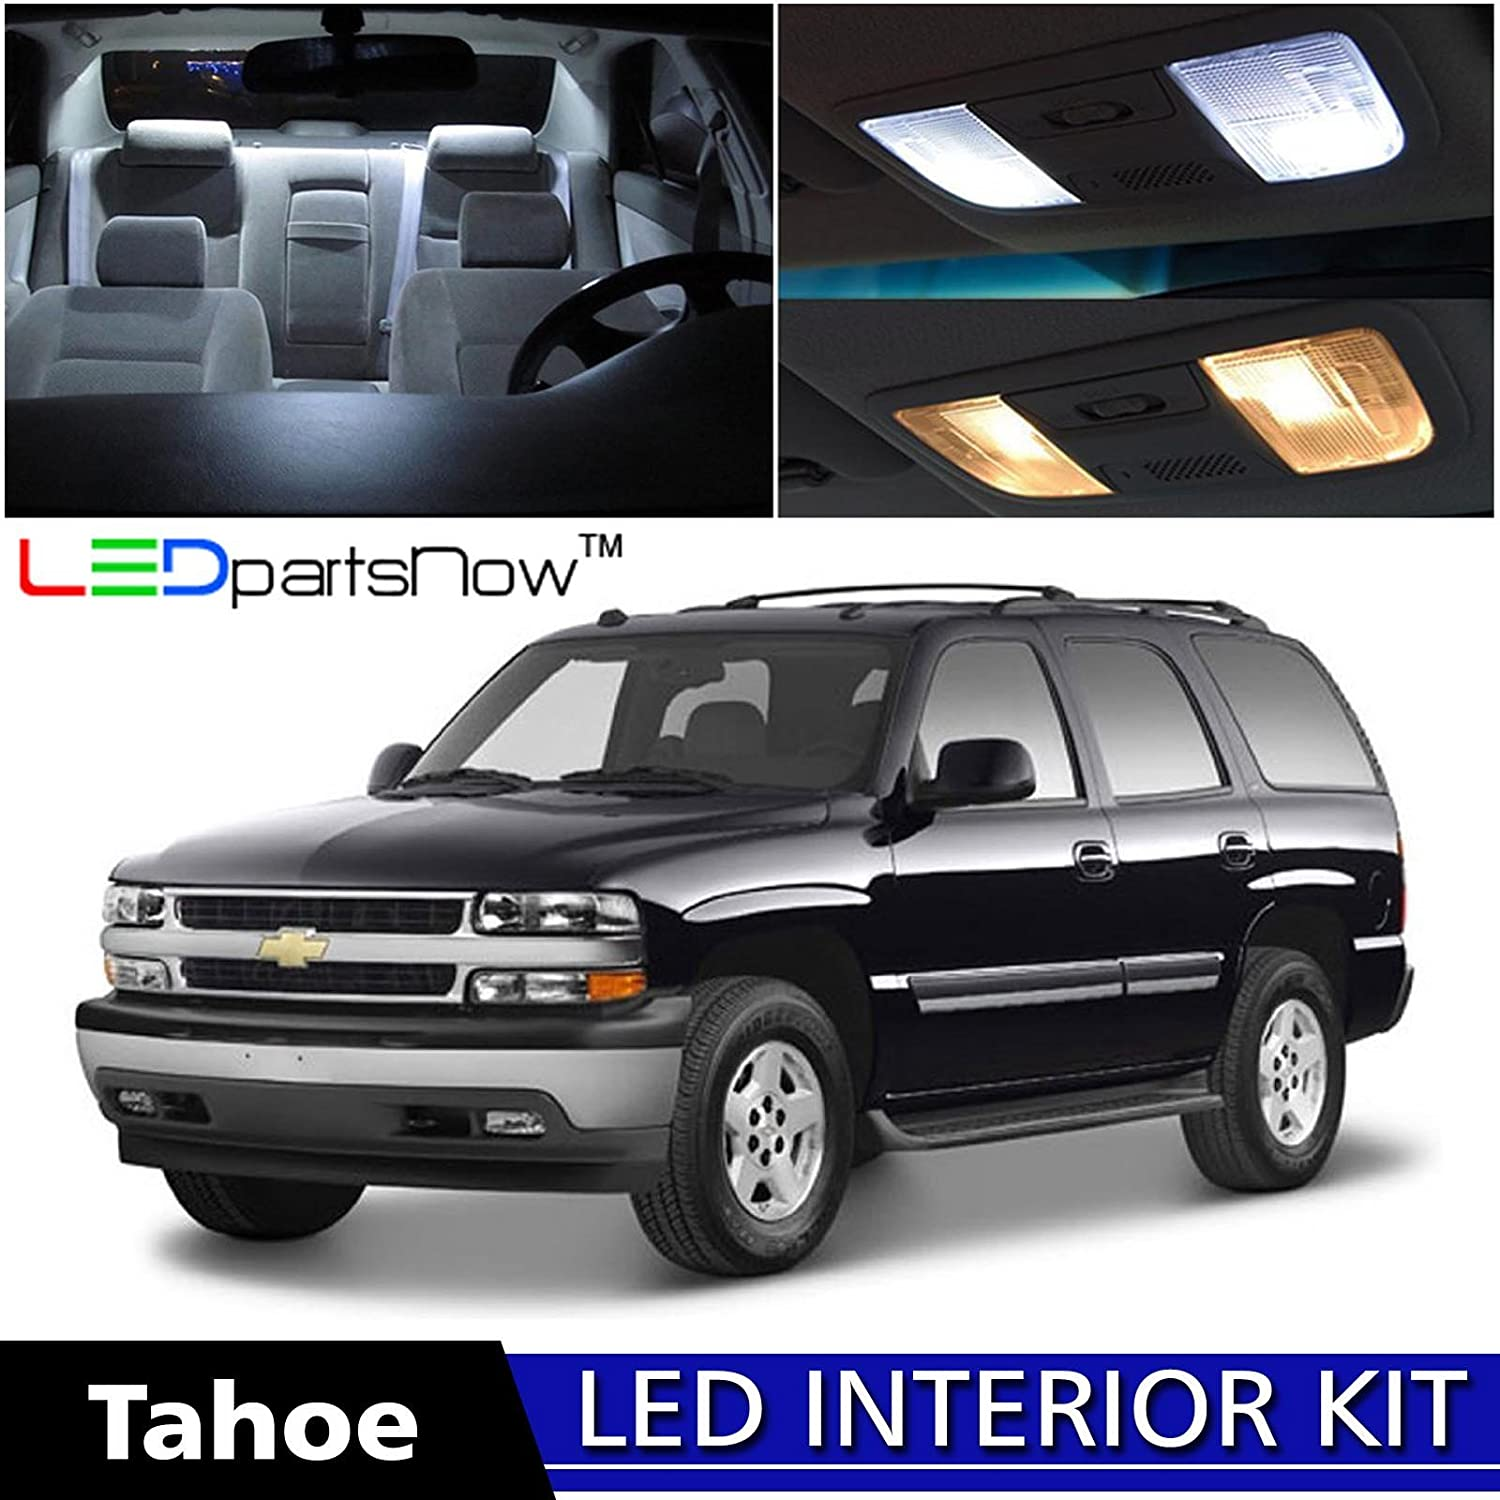 Ledpartsnow 2000 2006 Chevy Tahoe Led Interior Lights 03 Fuse Box Replacement Accessories Package Kit 18 Pieces White Automotive